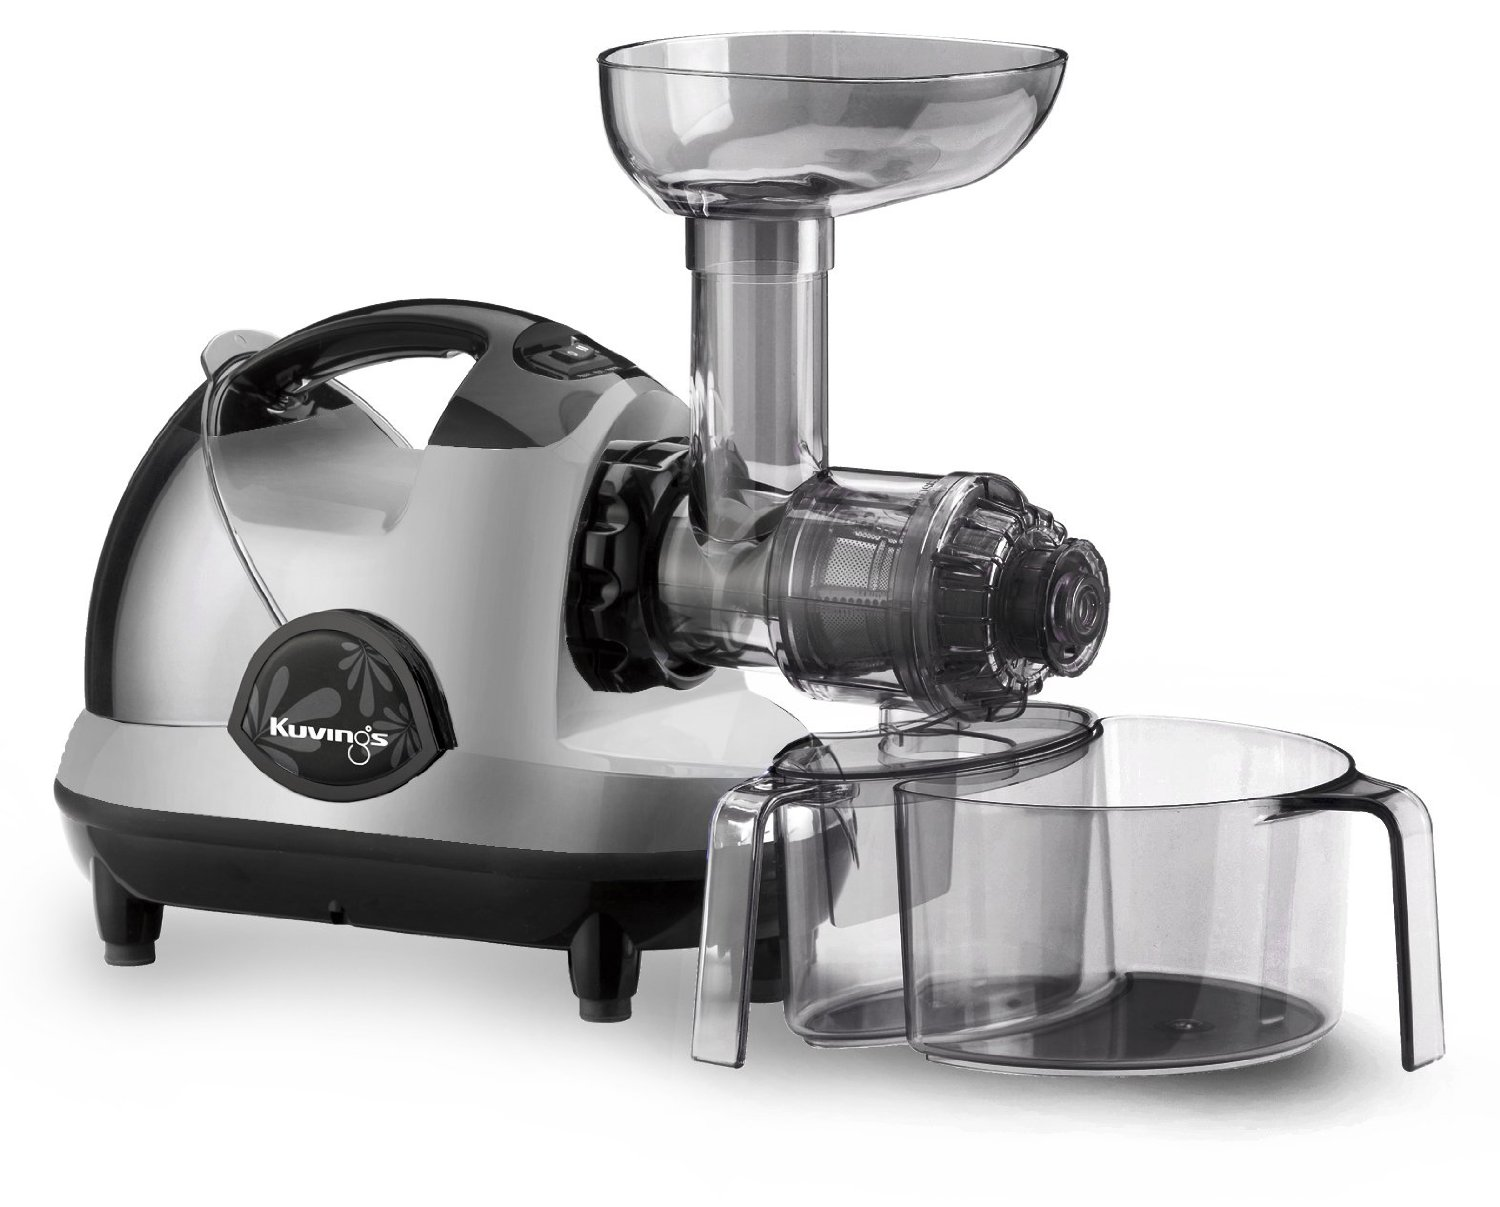 Best Masticating Juicer Extractor : Kuvings NJE3580U Masticating Slow Juicer